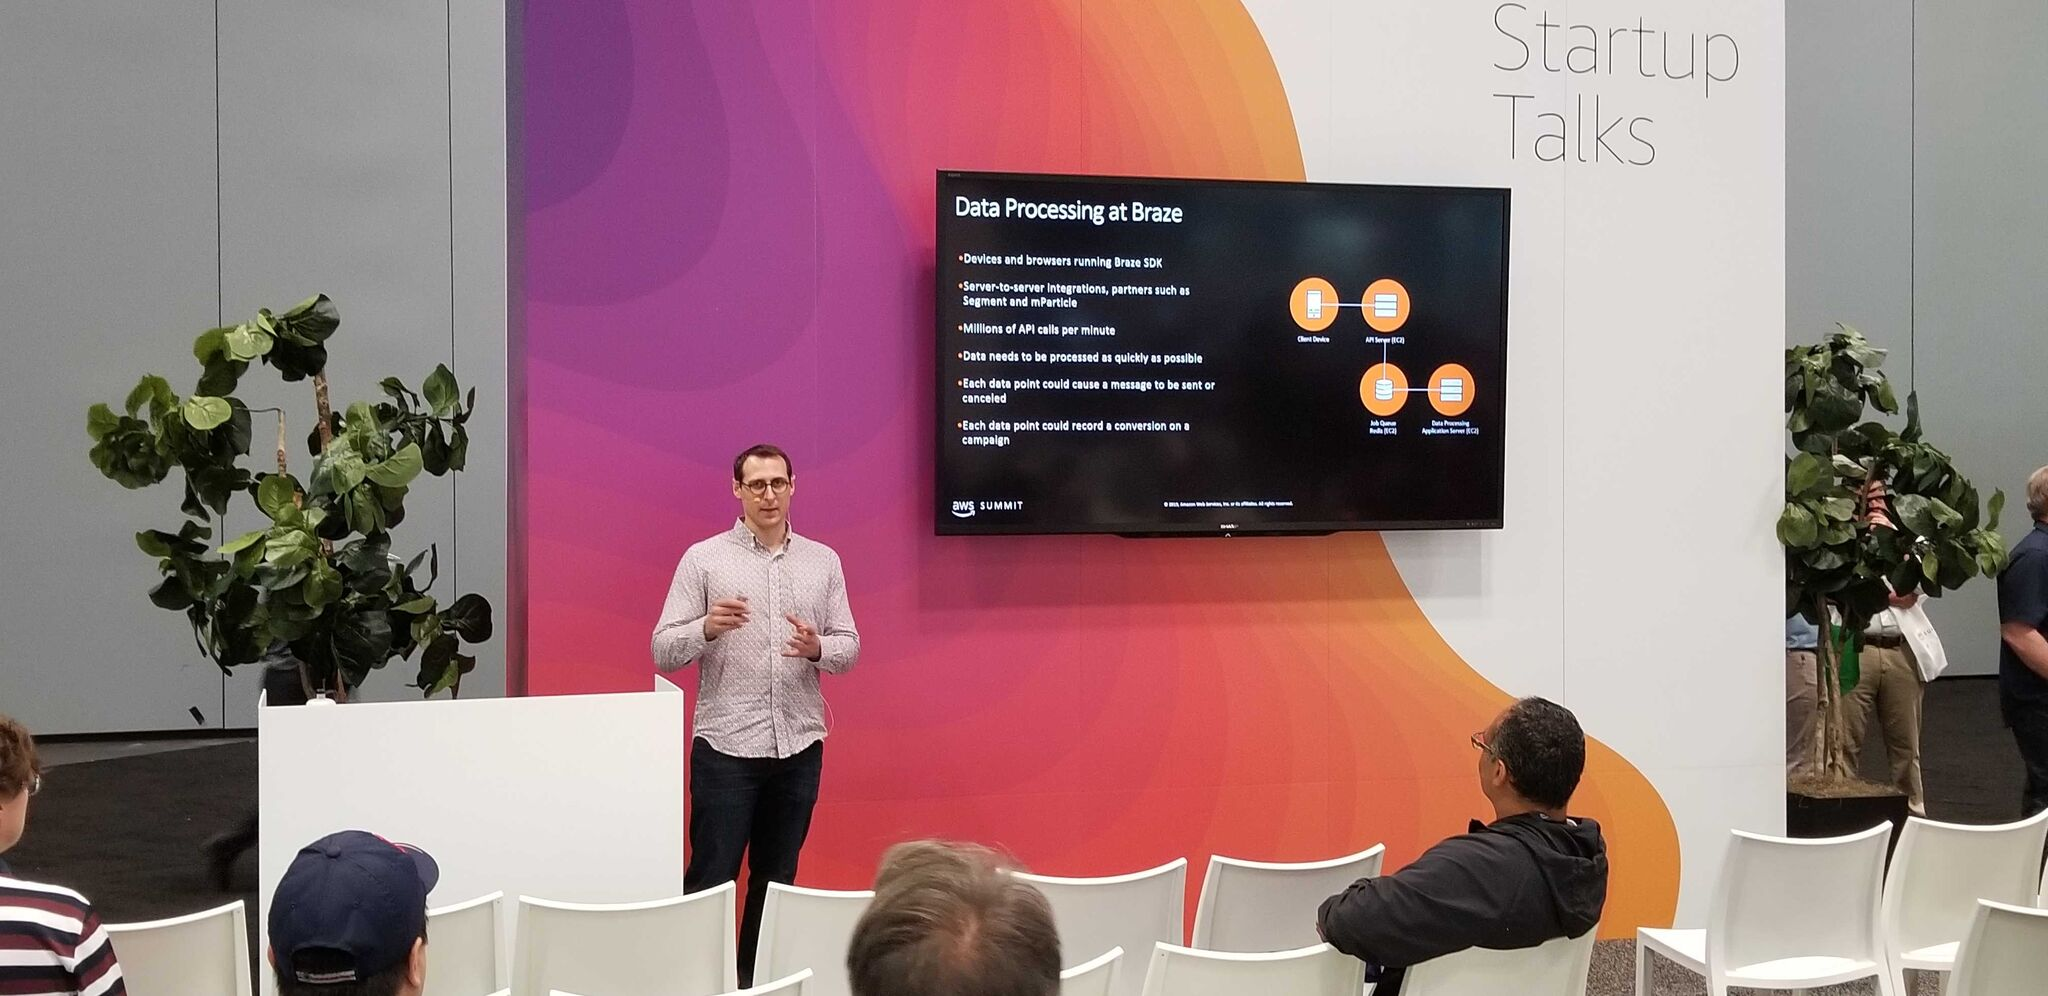 CTO & Co-Founder, @jon_hyman, talks data processing at #AWSSummit in NYC! #data #martech #tech https://t.co/Sr5hCsXmxP